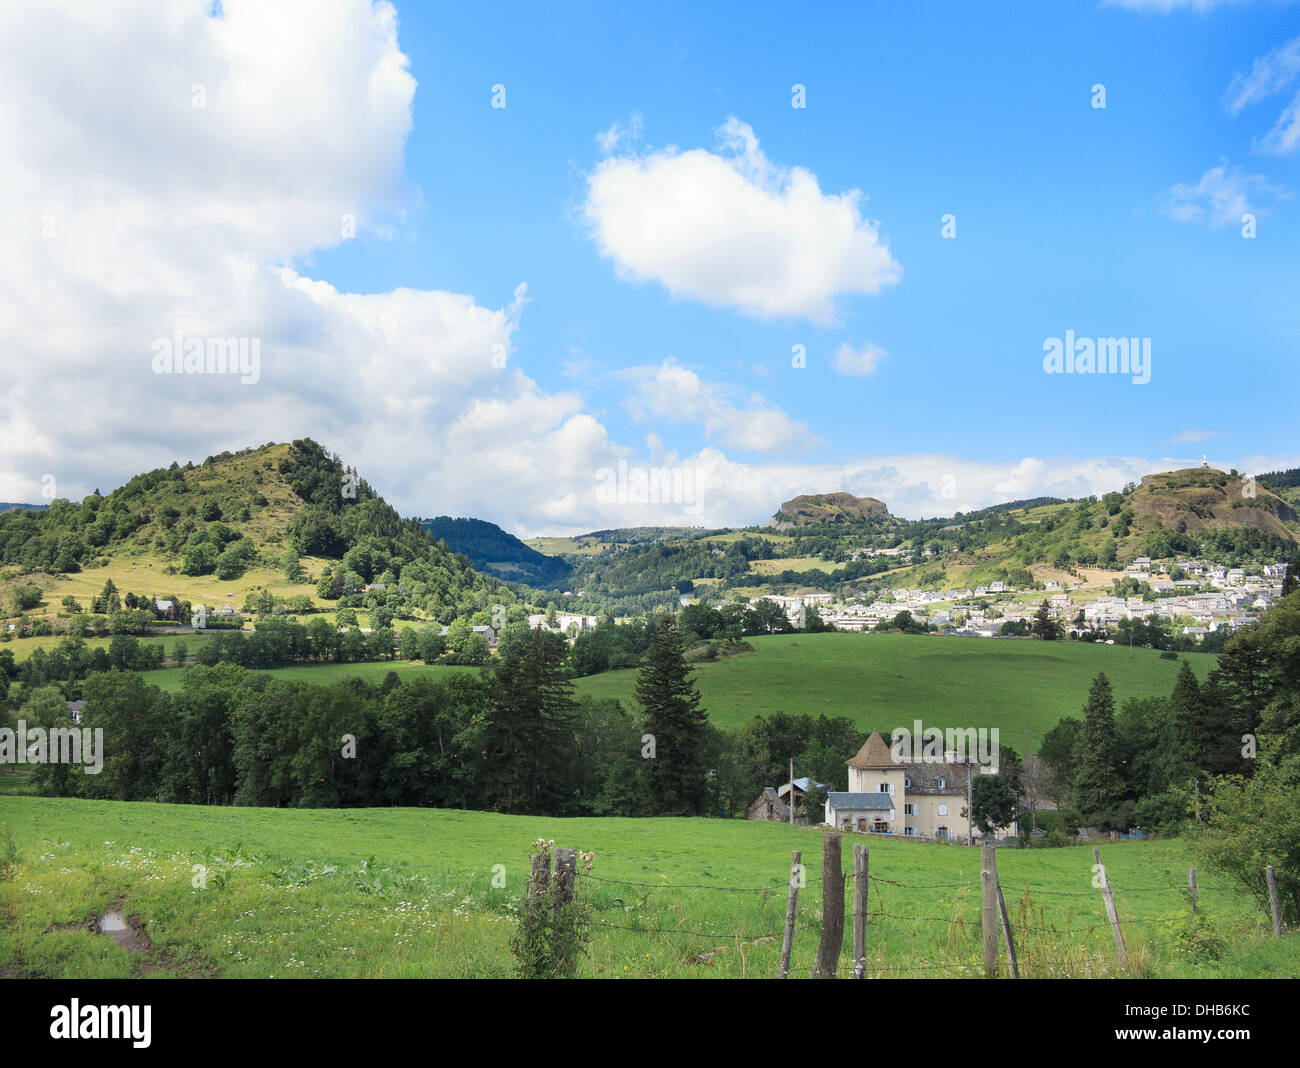 Three of the hills (puy) remnants of a vast extinct volcano surround the town in Parc Naturel Regional des Volcans d'Auvergne - Stock Image